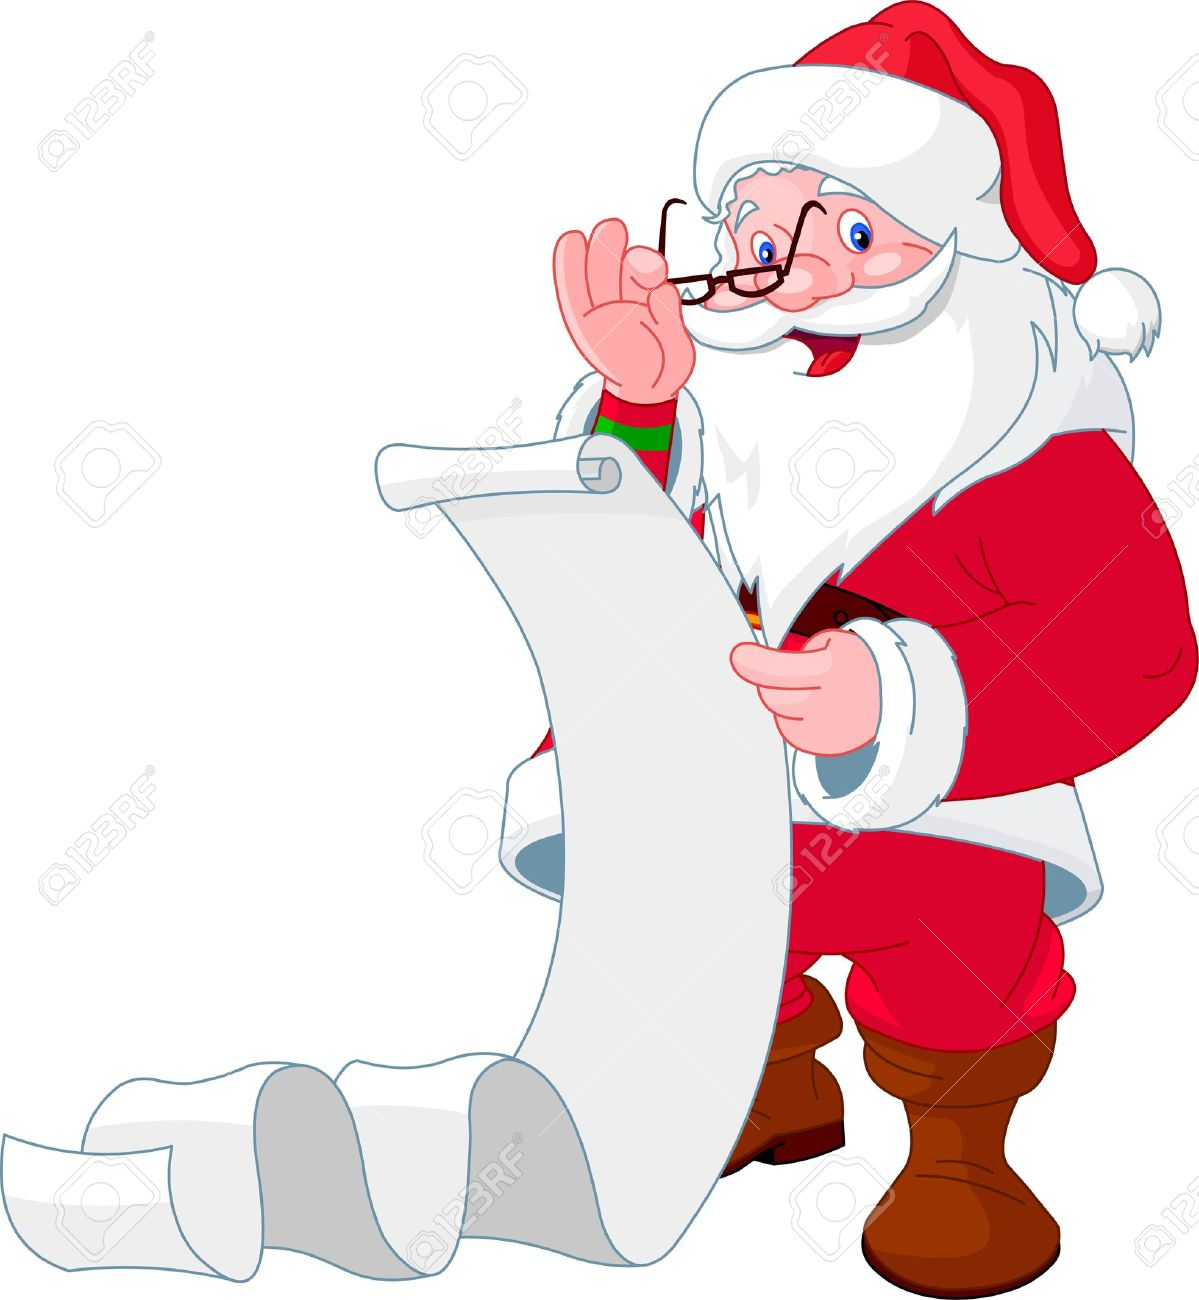 Letter from santa clipart clip art library library Letter from santa clipart - ClipartFest clip art library library